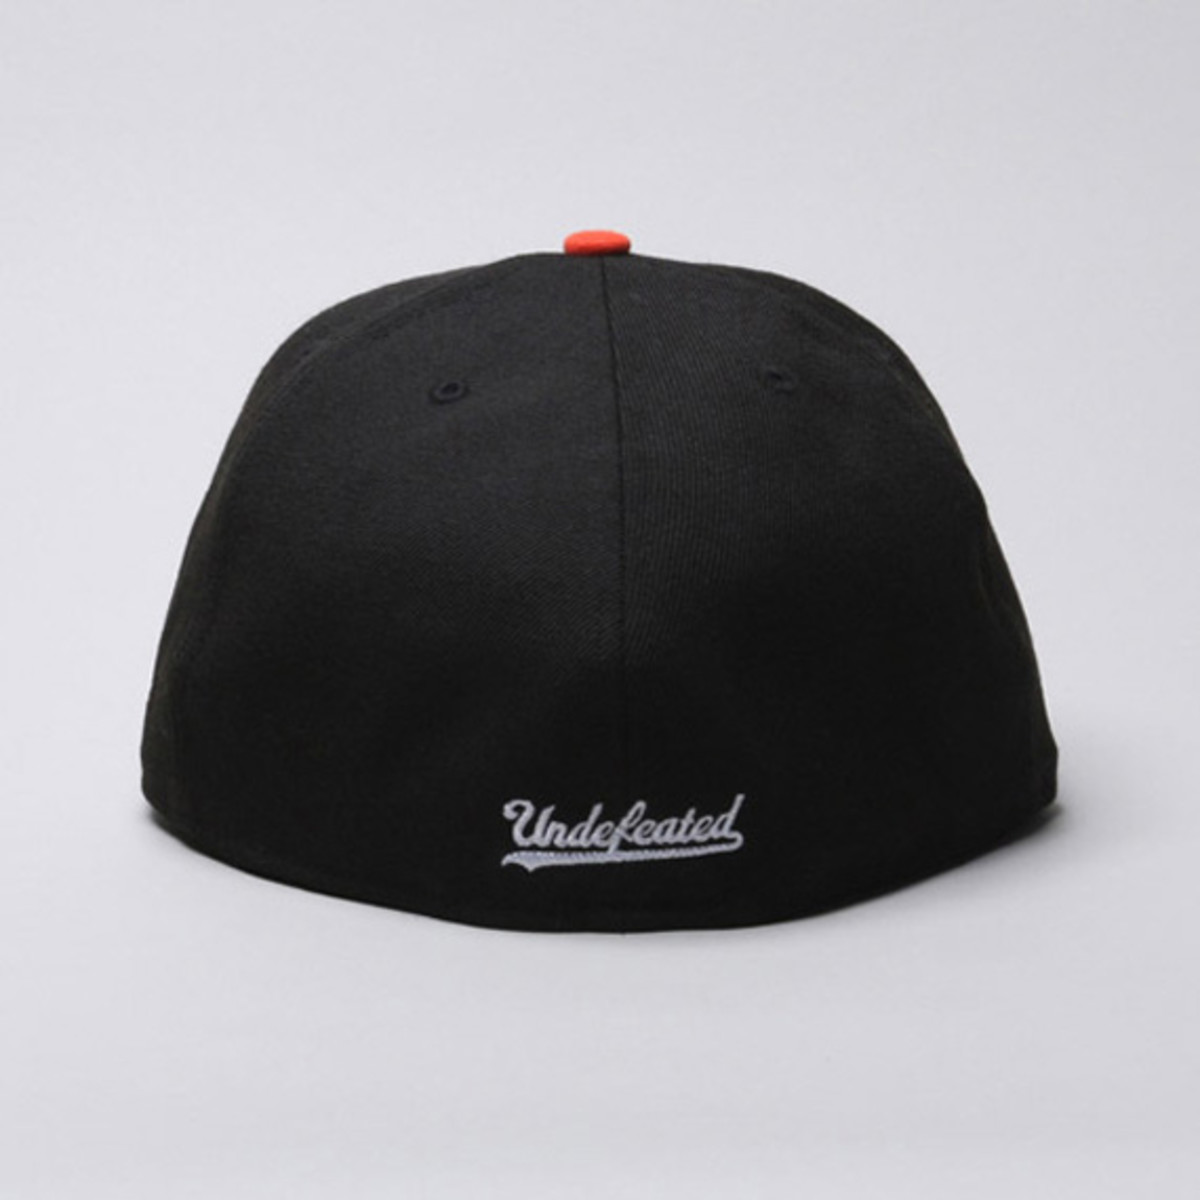 undefeated-spring-summer-2011-delivery-1-26